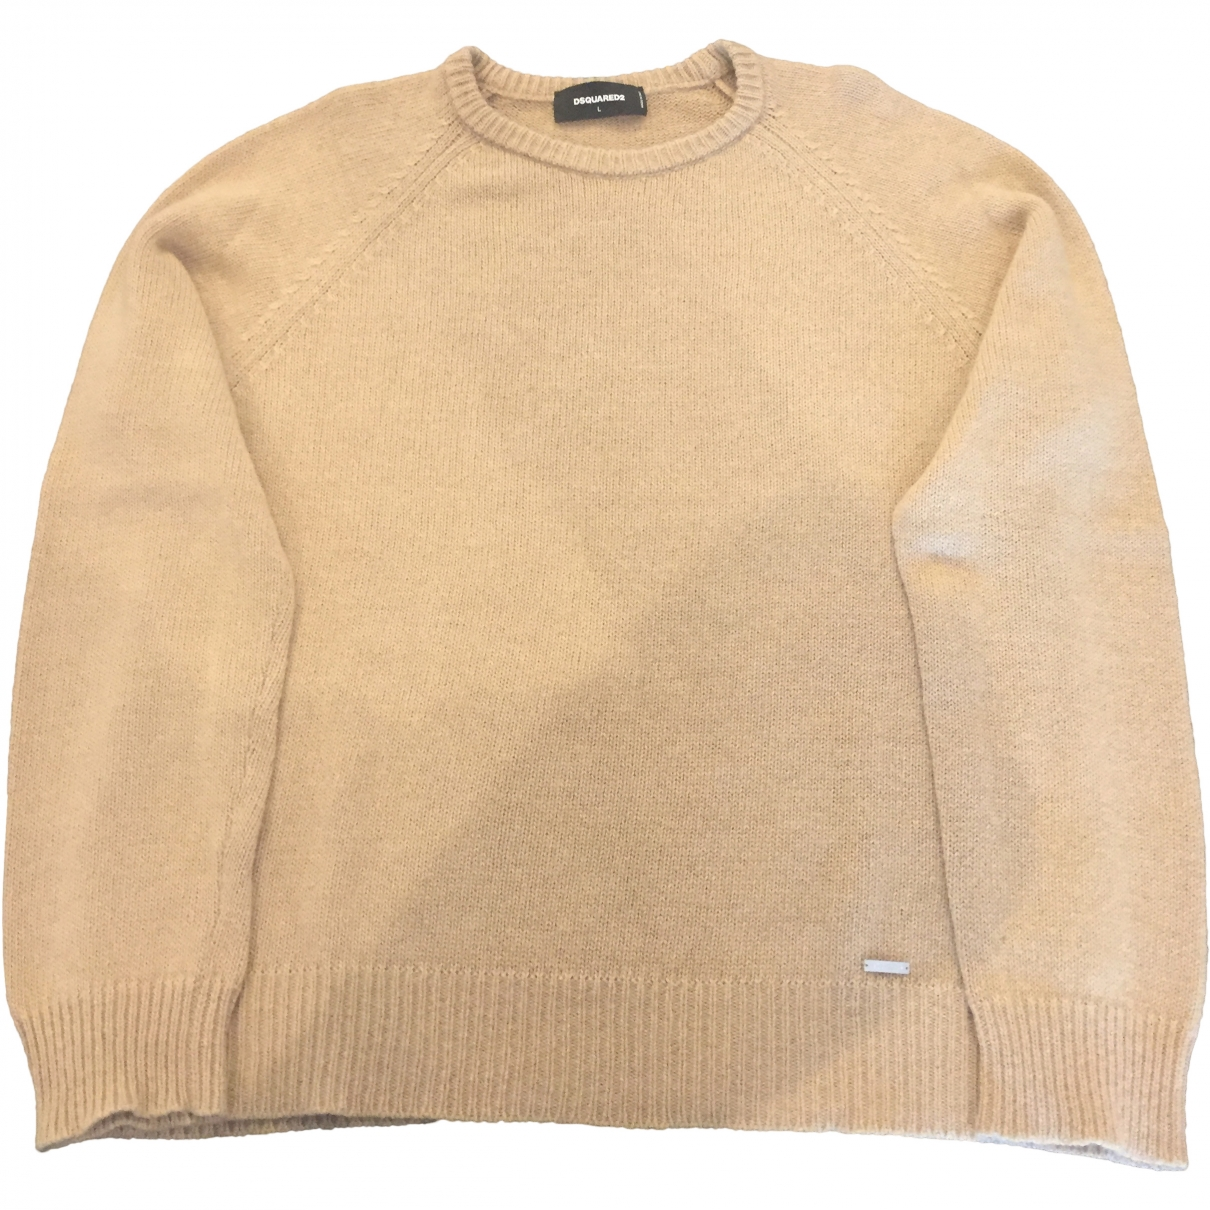 Dsquared2 \N Beige Wool Knitwear & Sweatshirts for Men L International